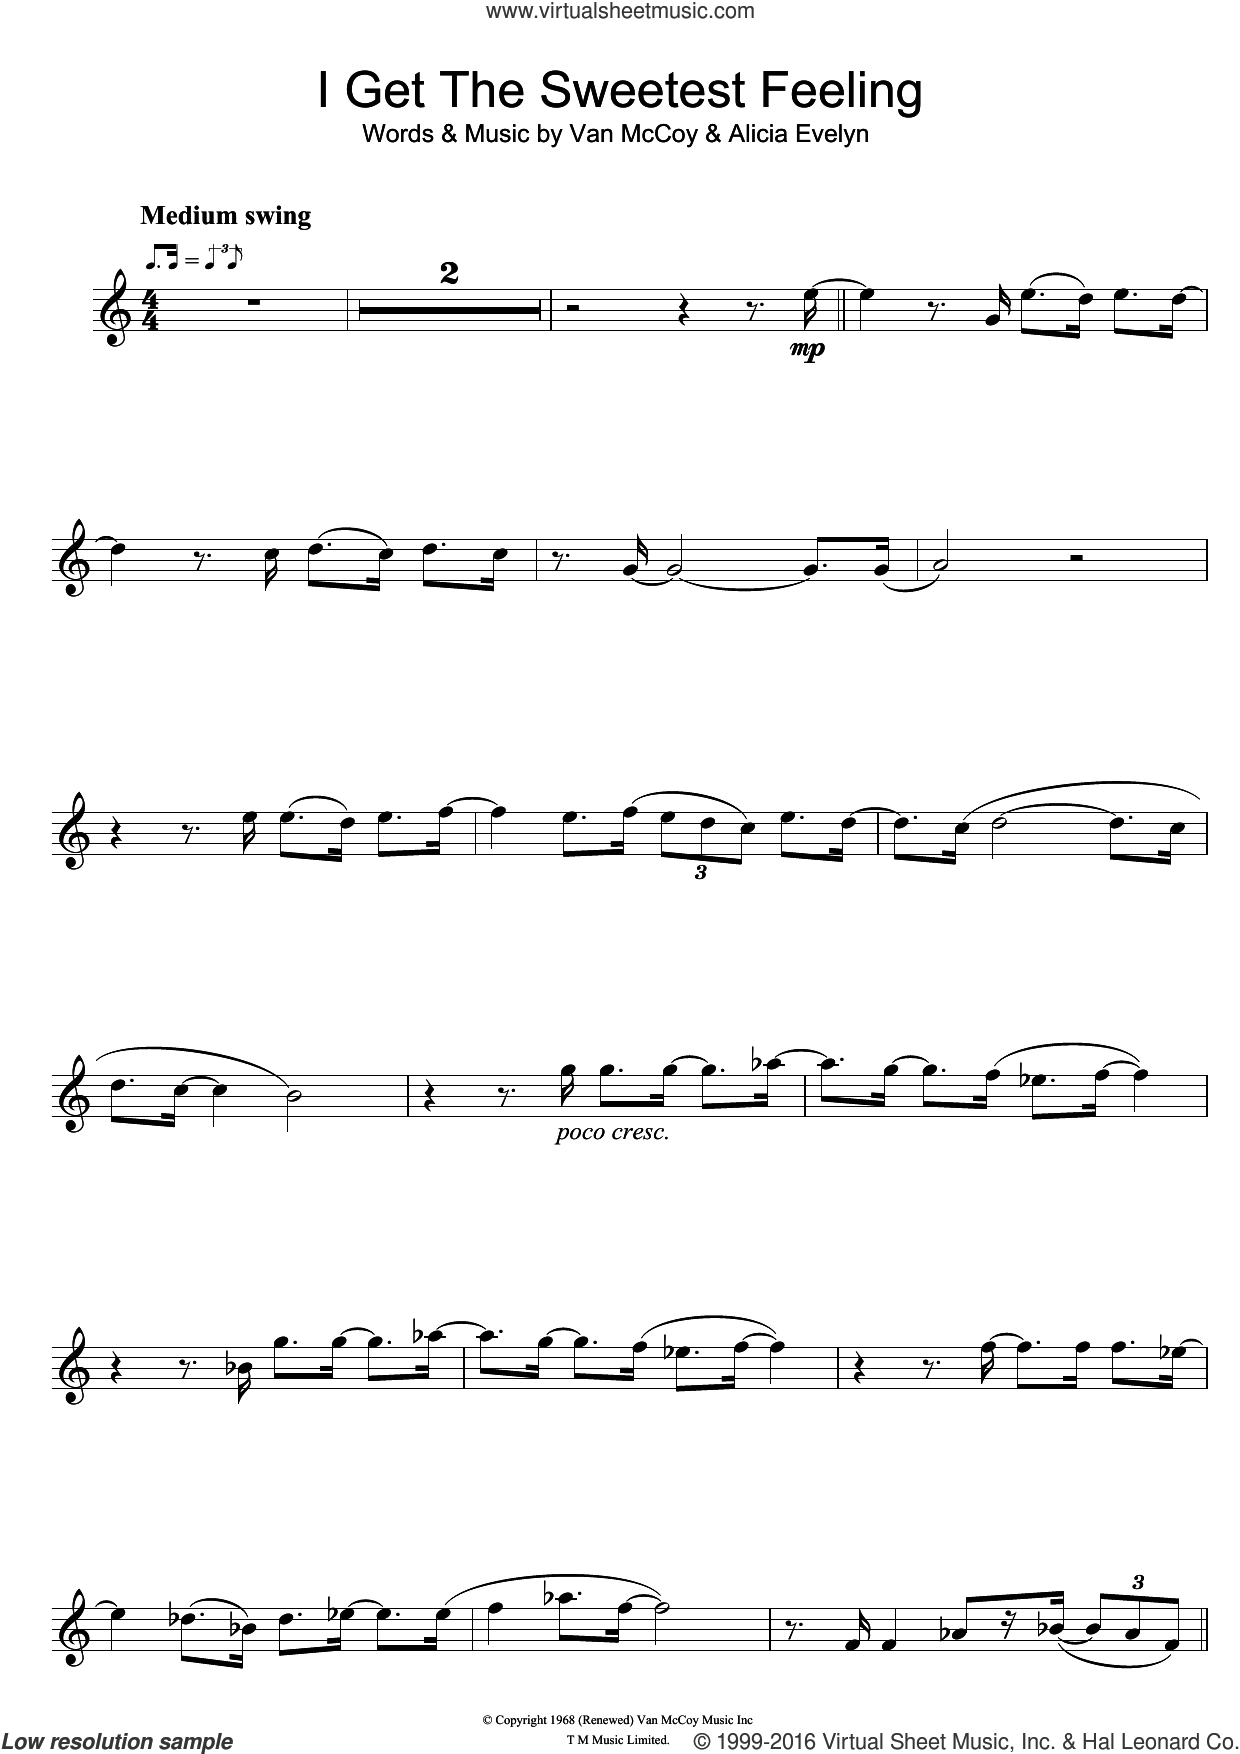 I Get The Sweetest Feeling sheet music for trumpet solo by Jackie Wilson, Alicia Evelyn and Van McCoy, intermediate